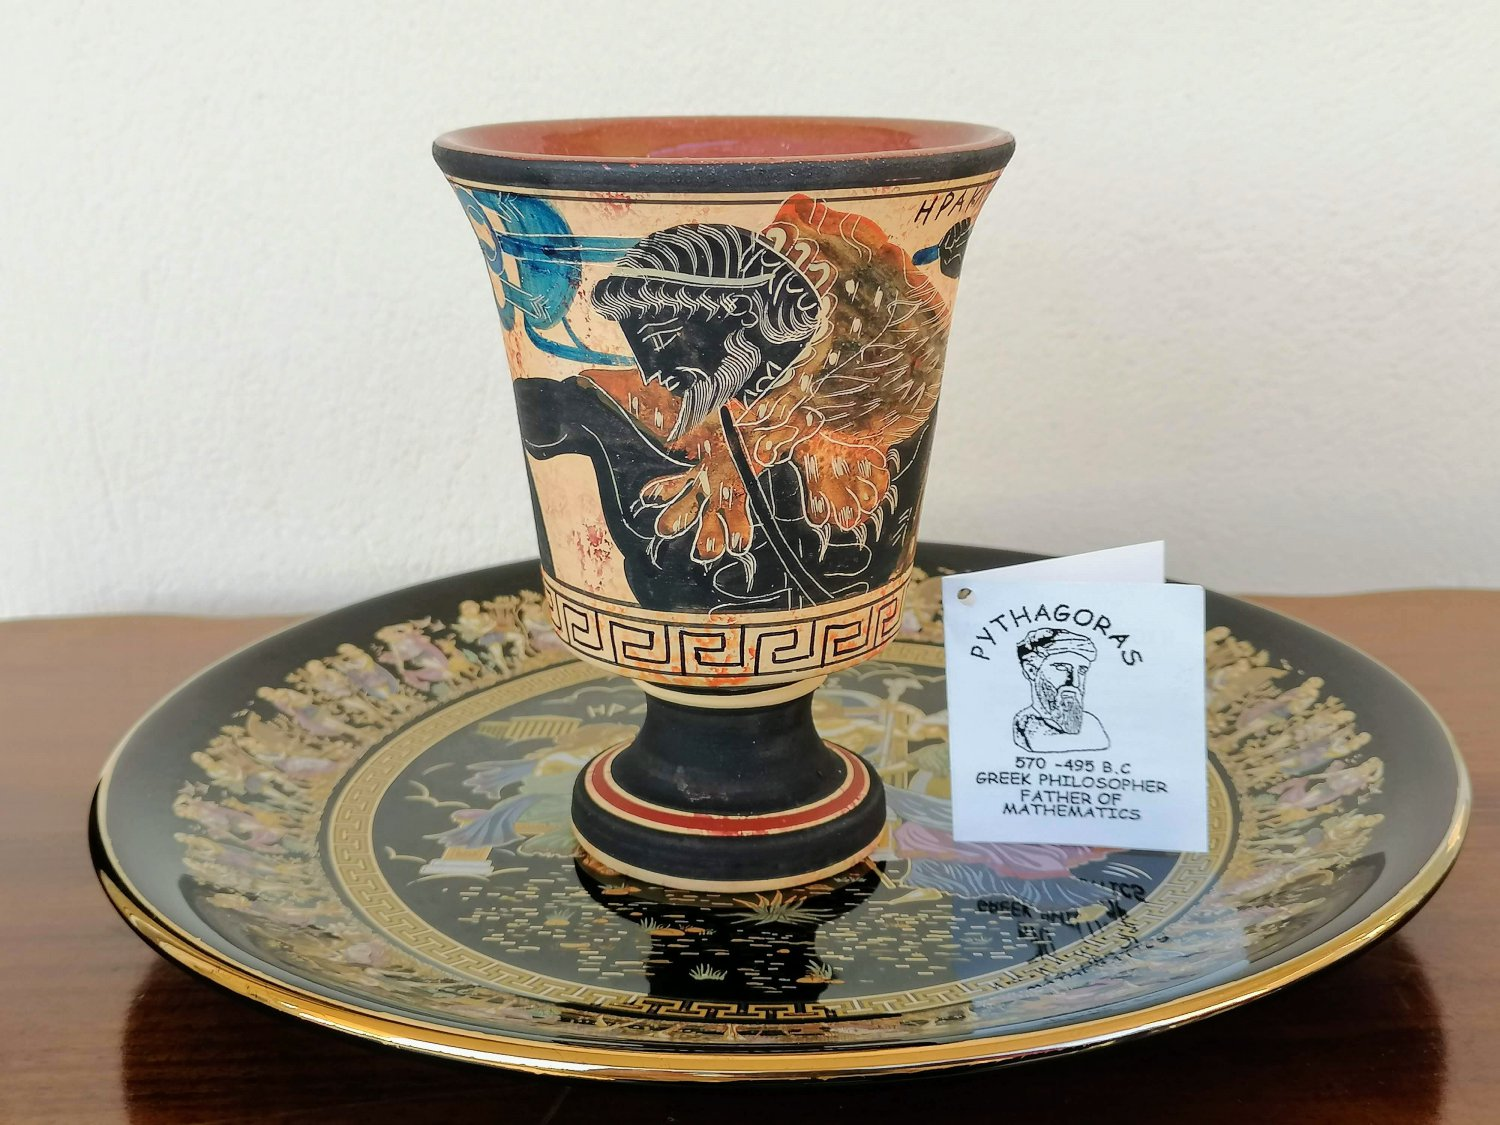 Pythagoras cup, Fair cup, Museum Copy, engraved in hand, depicts Hercules, stoneware, pottery